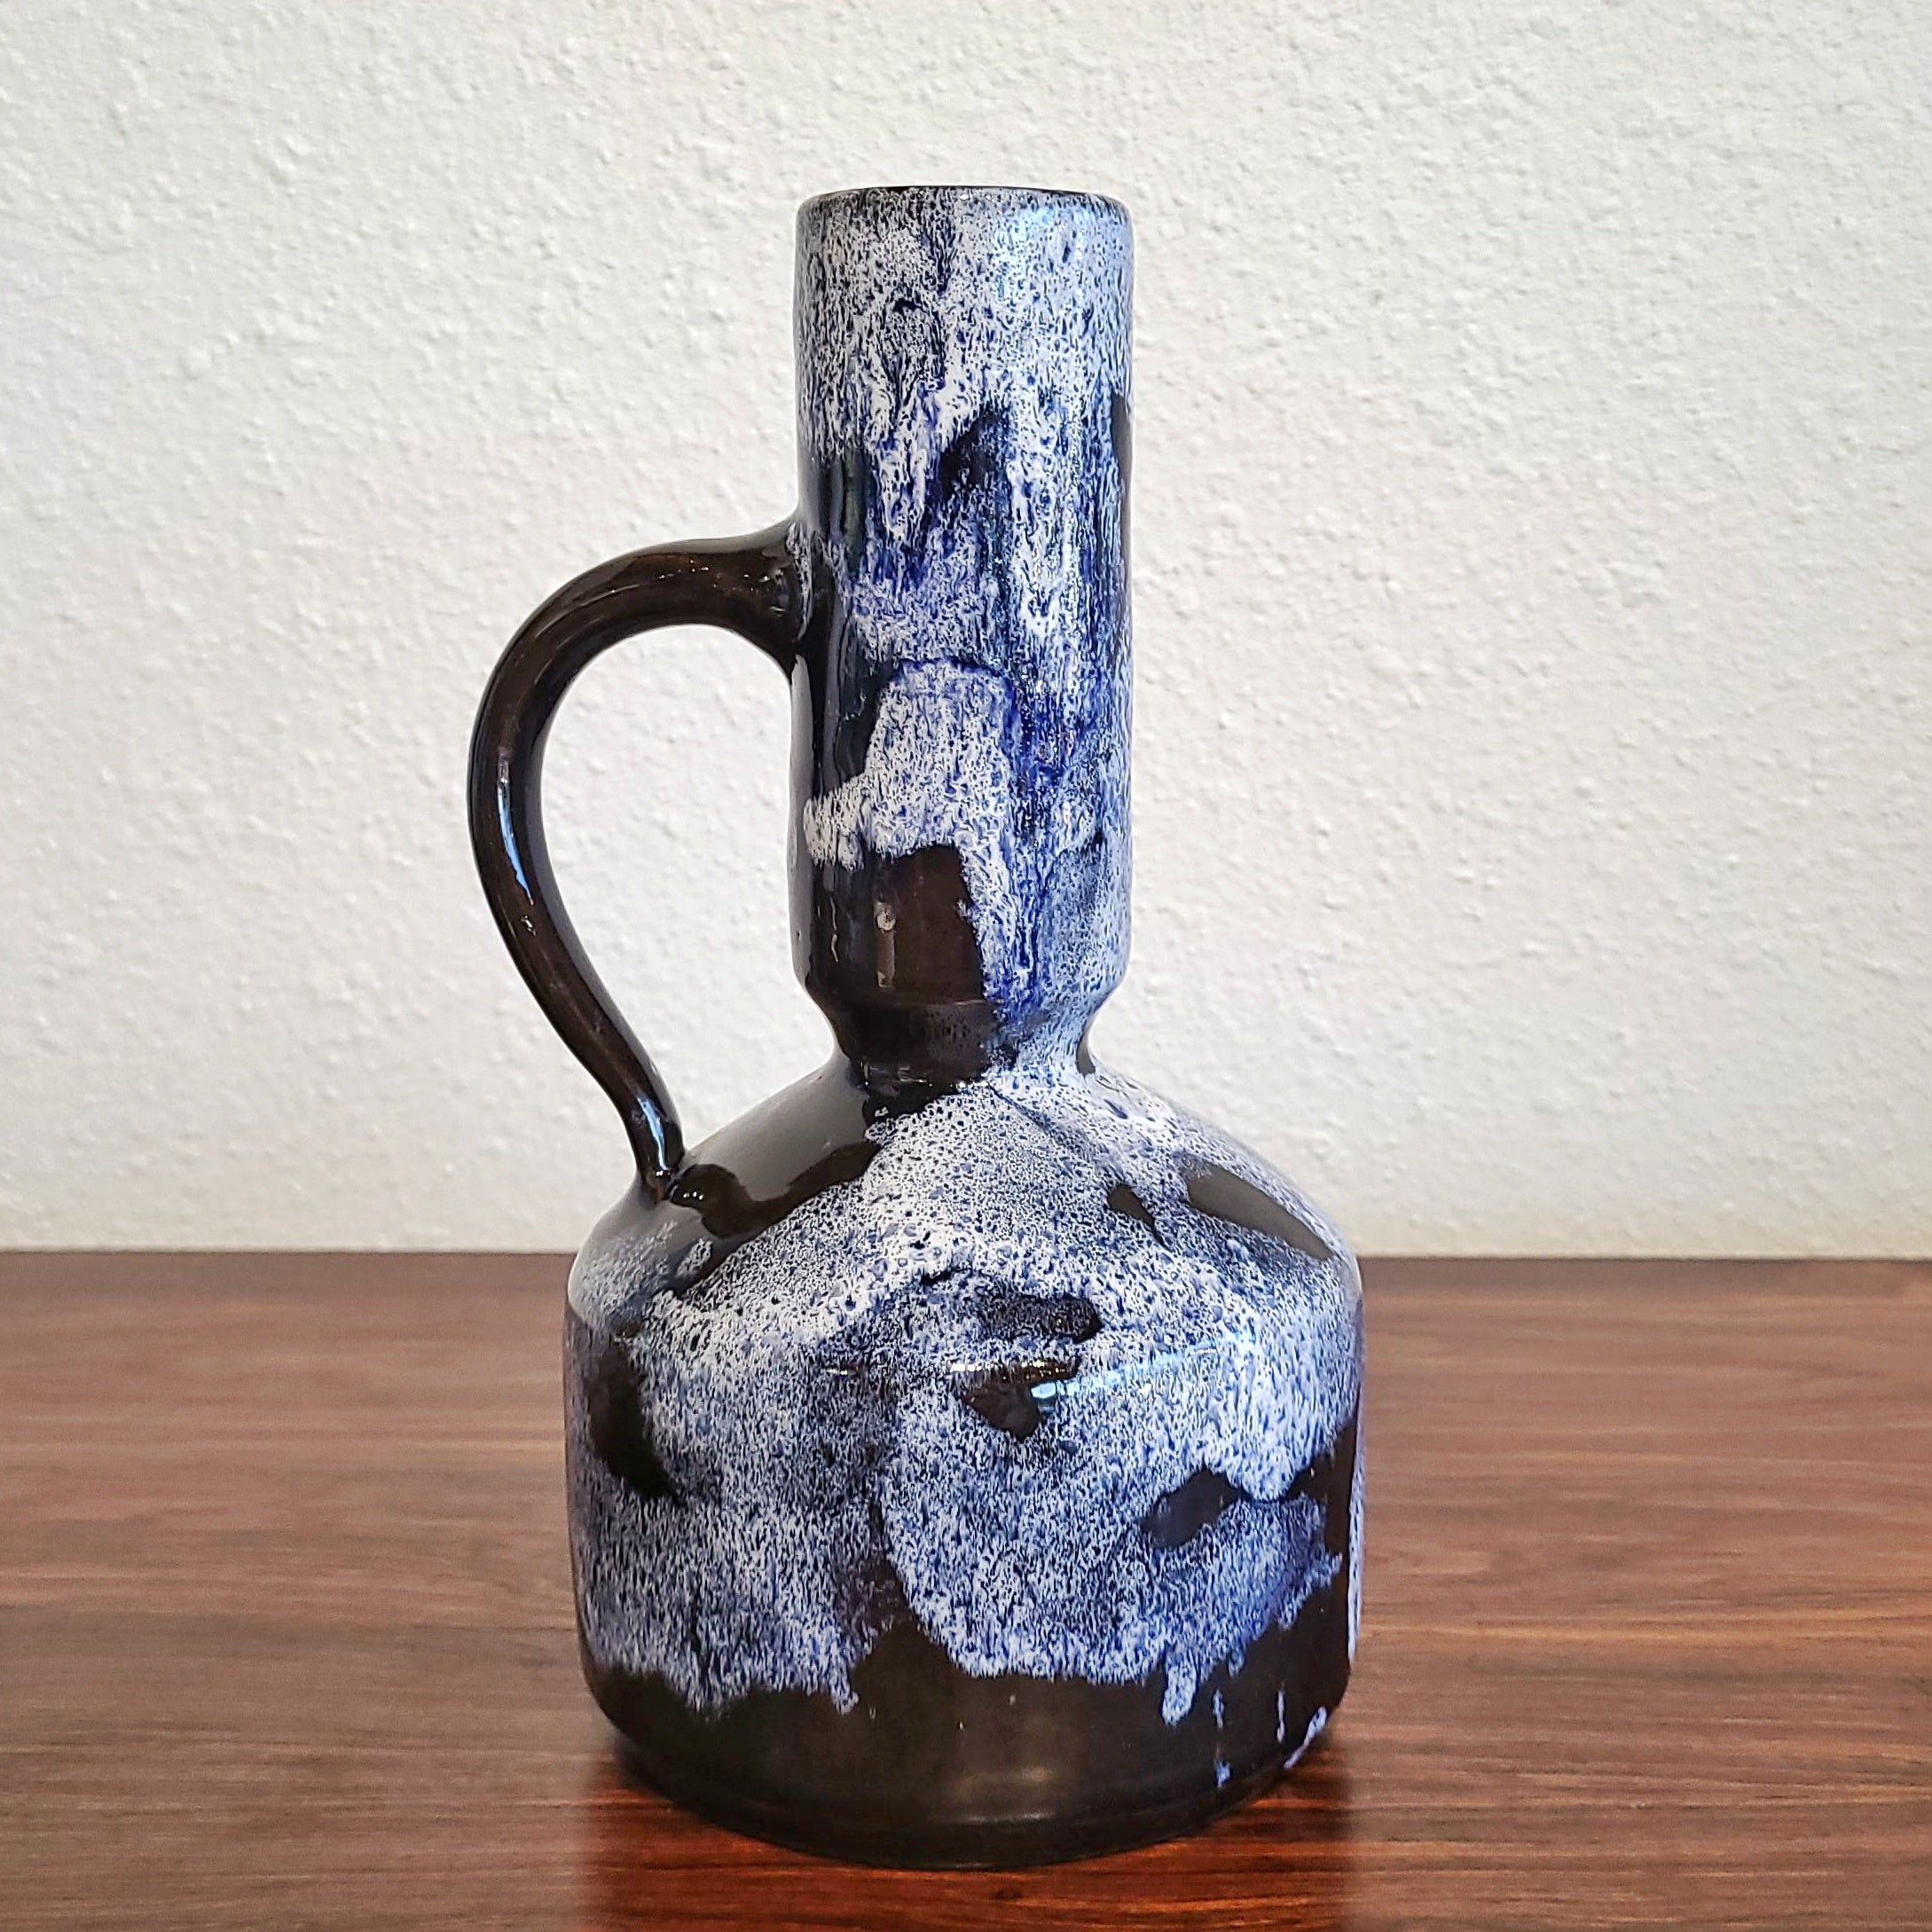 UNUSUAL BLUE AND WHITE STUDIO POTTERY HANDLE VASE (SIGNED)